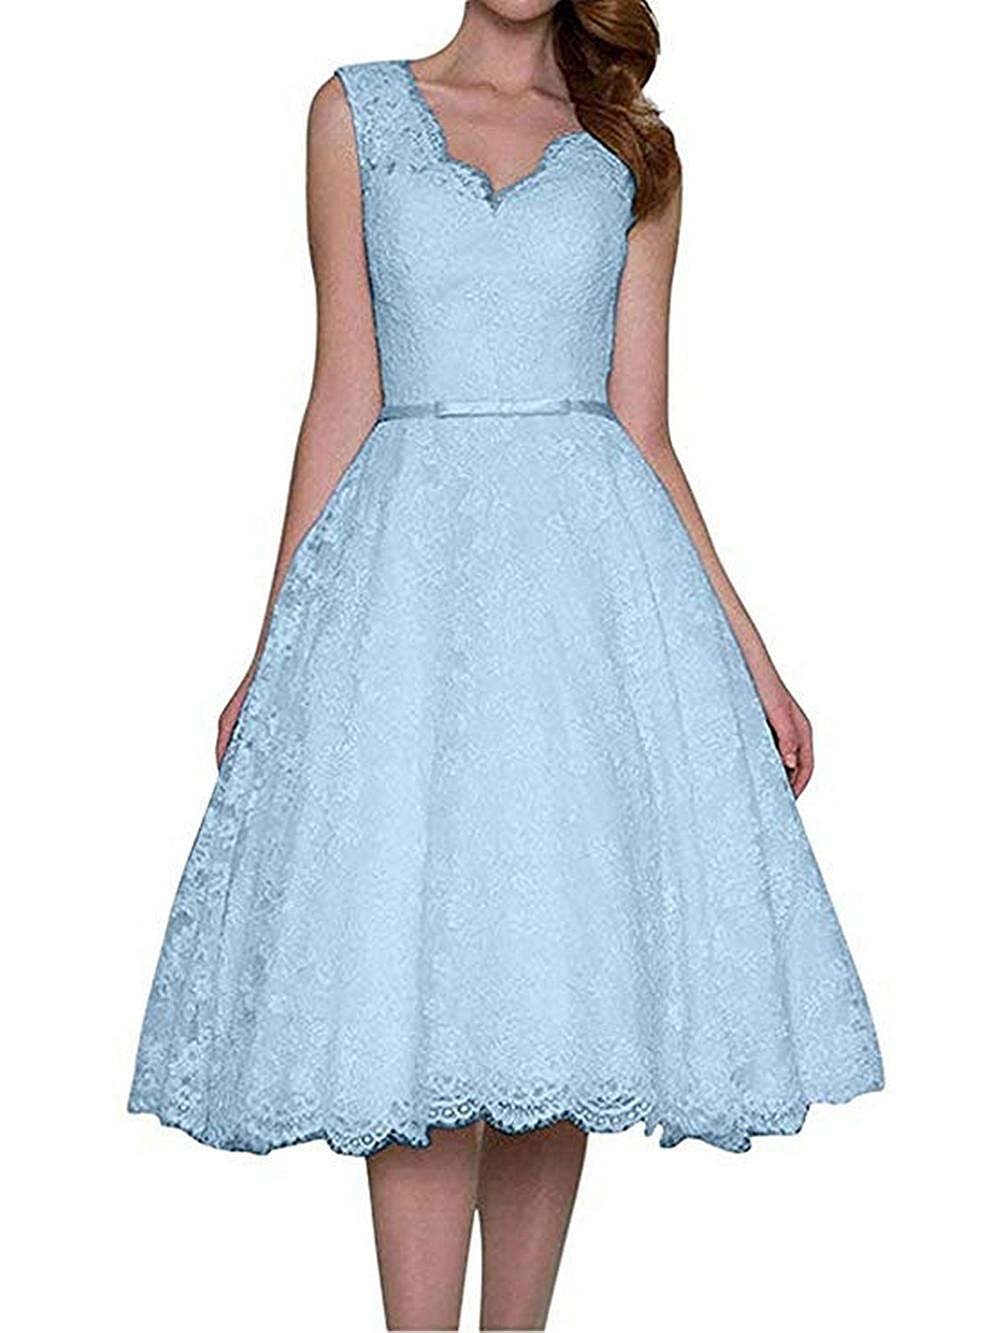 bluee JAEDEN Prom Dress Short Lace Evening Dresses with Belt Cocktail Party Gown V Neck